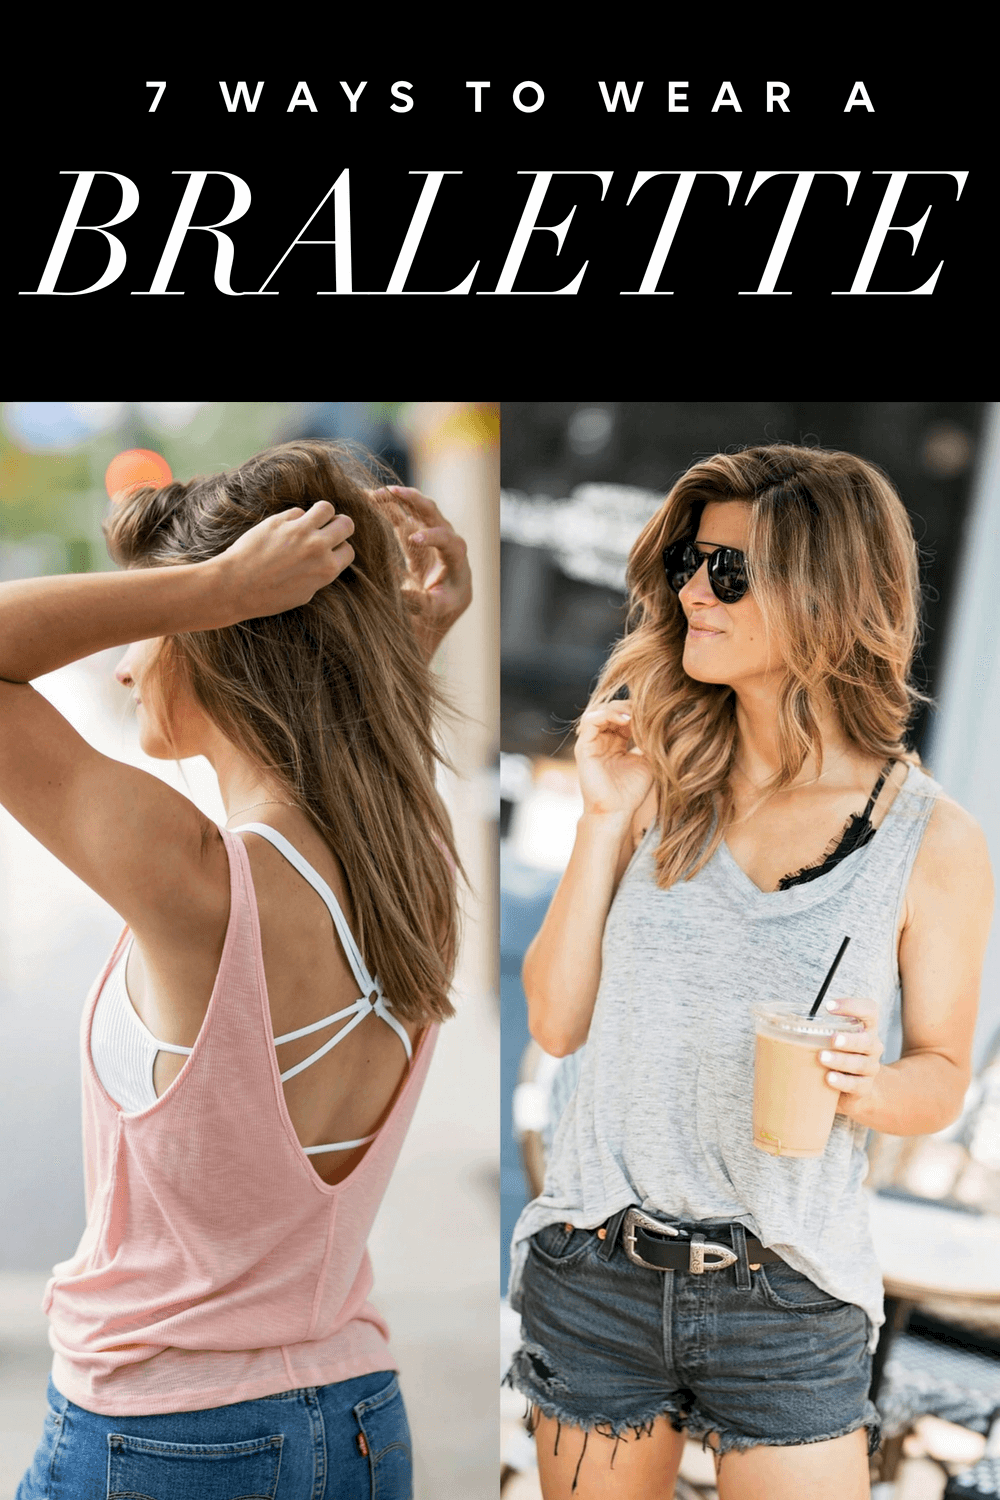 d5a79a9f31 How To Wear A Bralette  6 Easy Ways To Style A Bralette